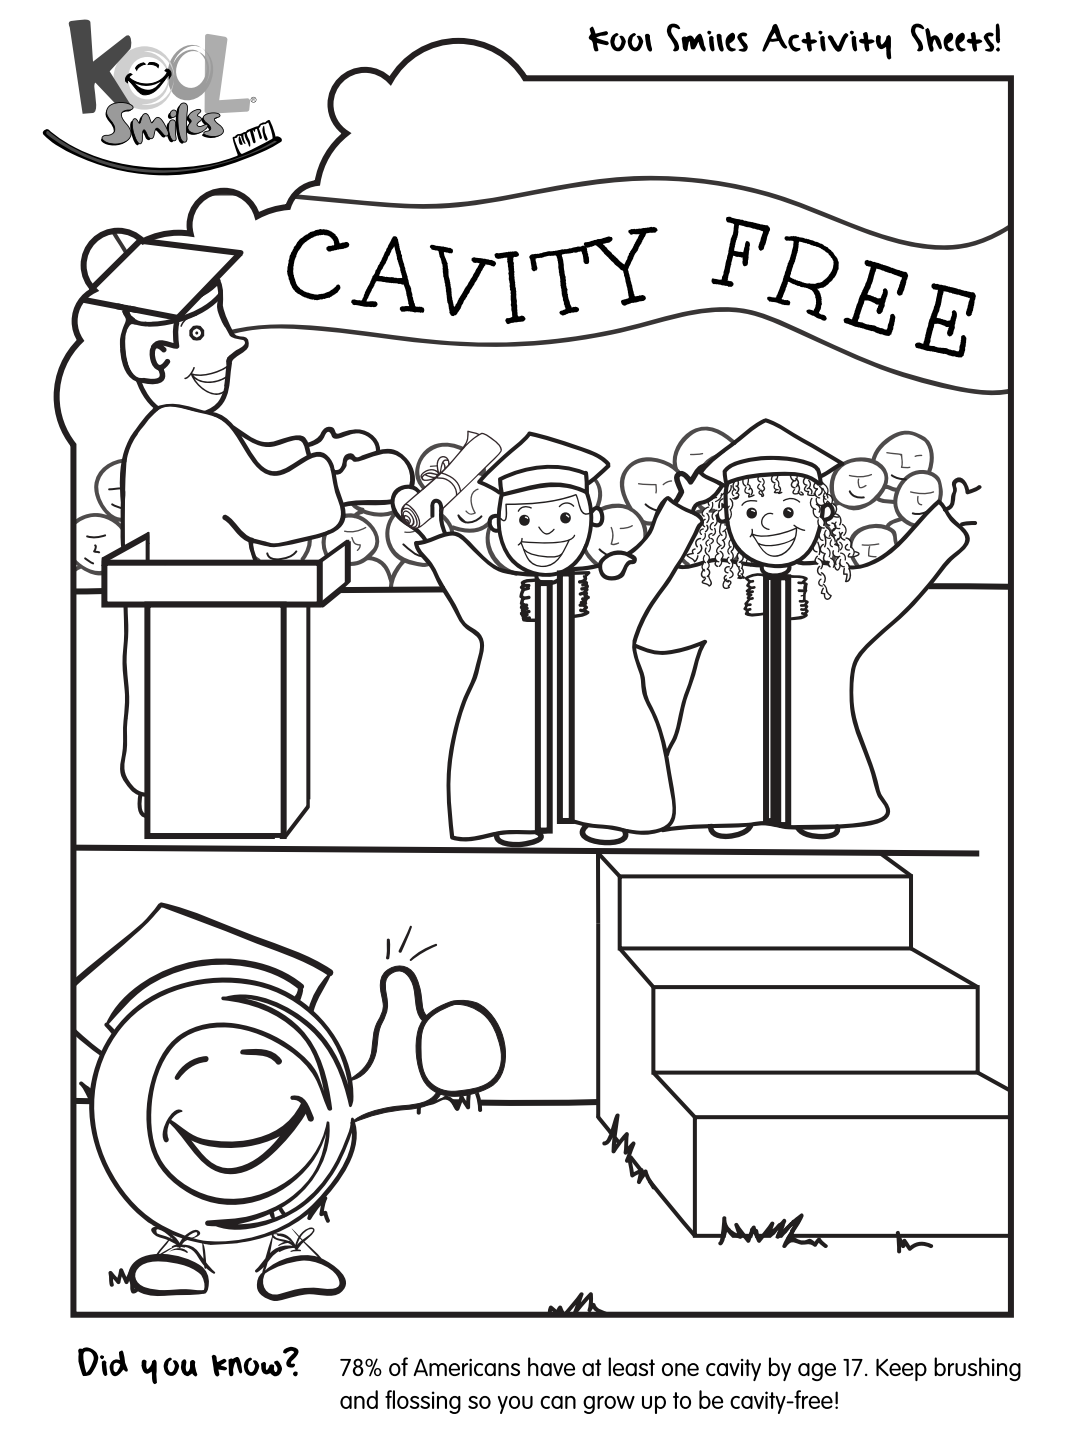 Are You Cavity Free 78 Of Americans Have At Least One